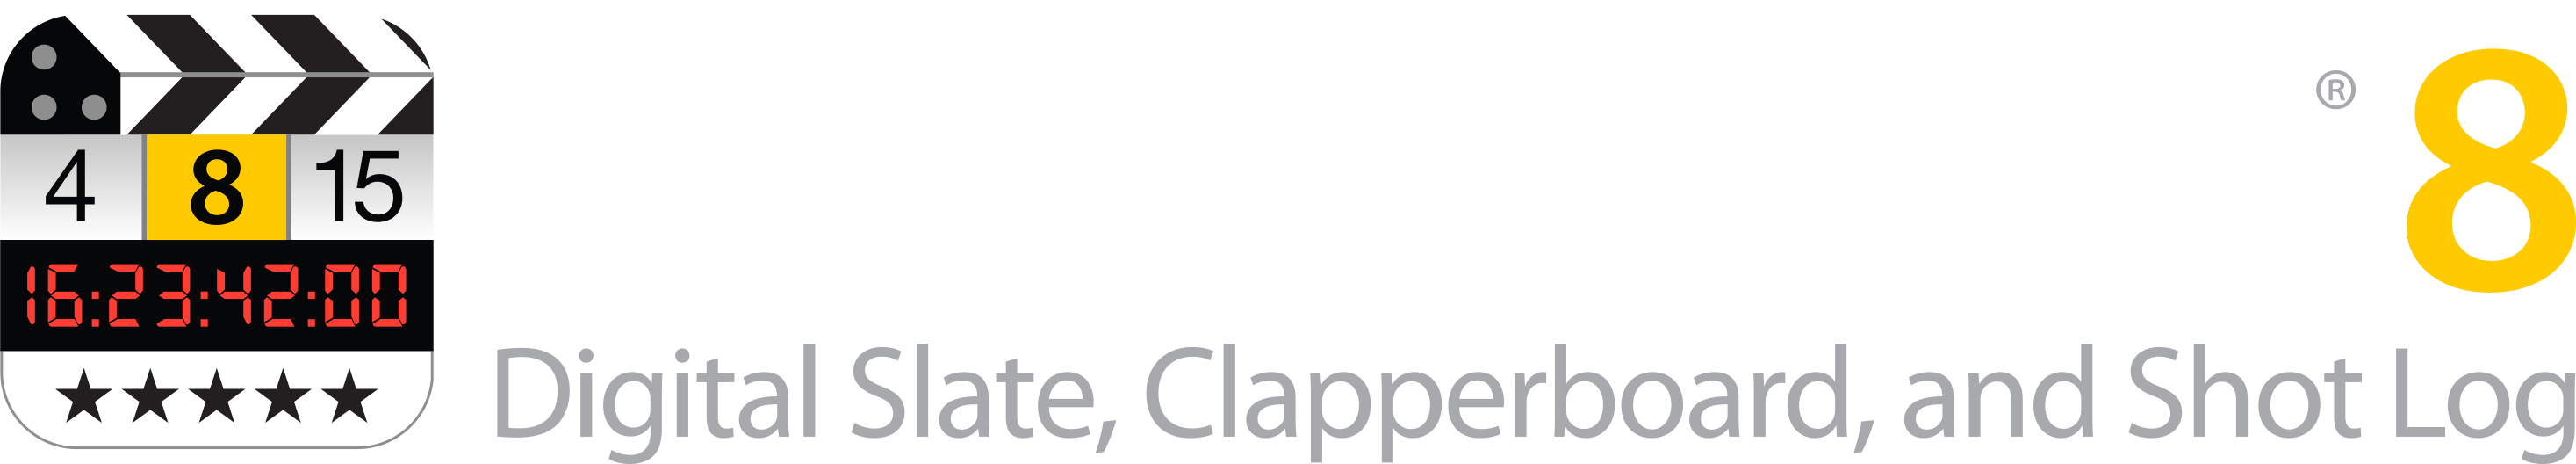 Image: MovieSlate 8 Logo on black